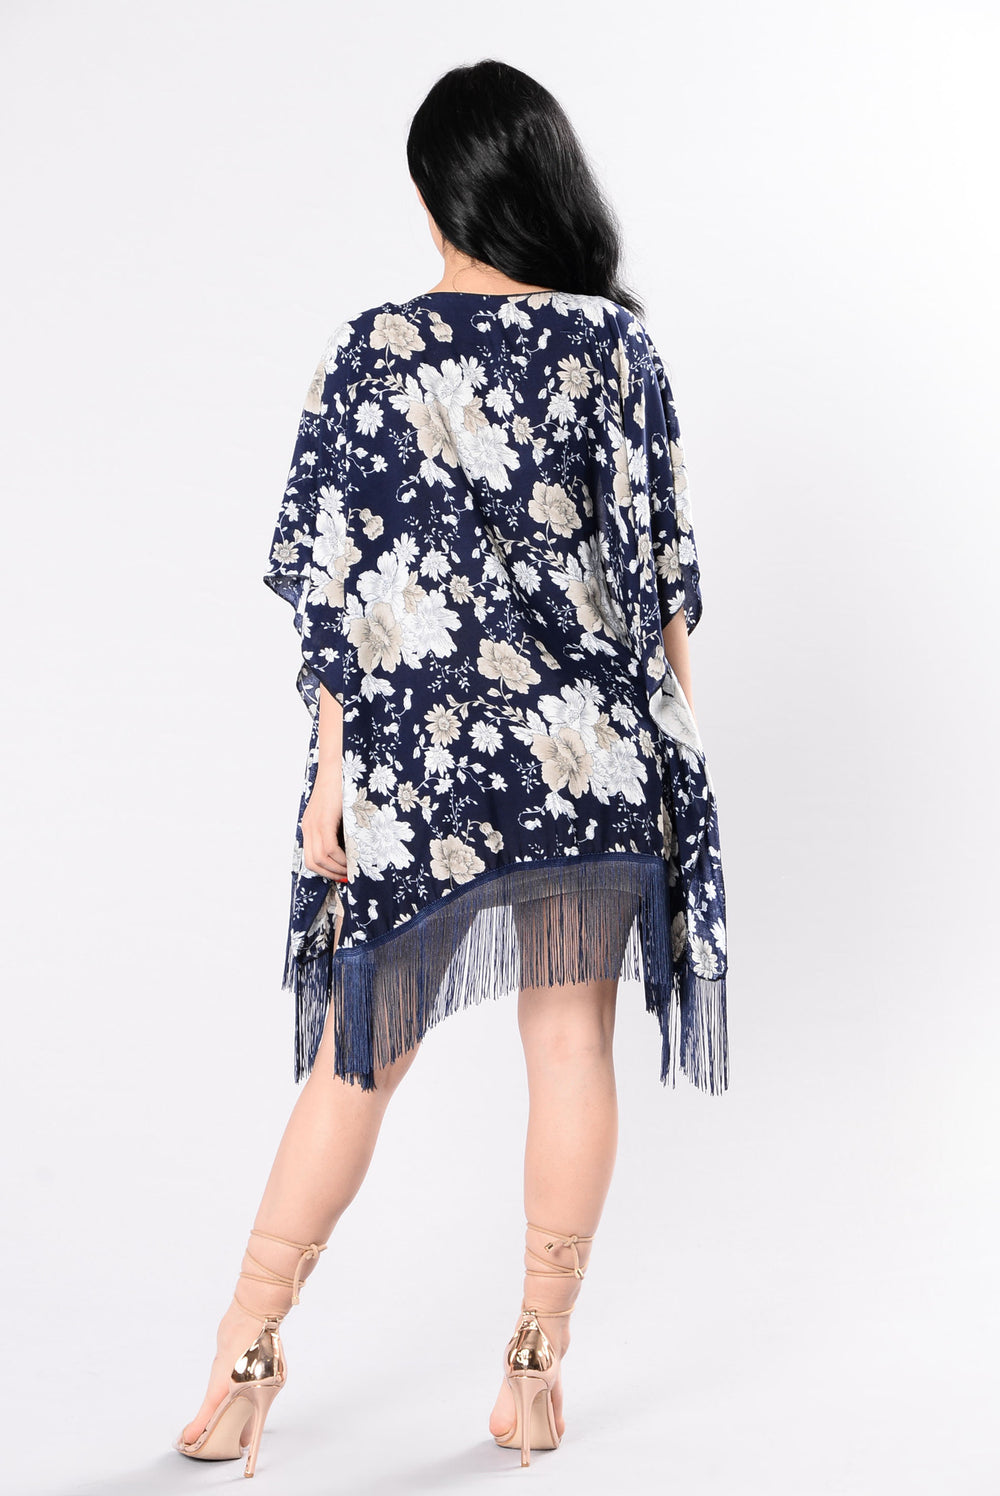 Feel The Love In The Air Kimono - Navy/Blue